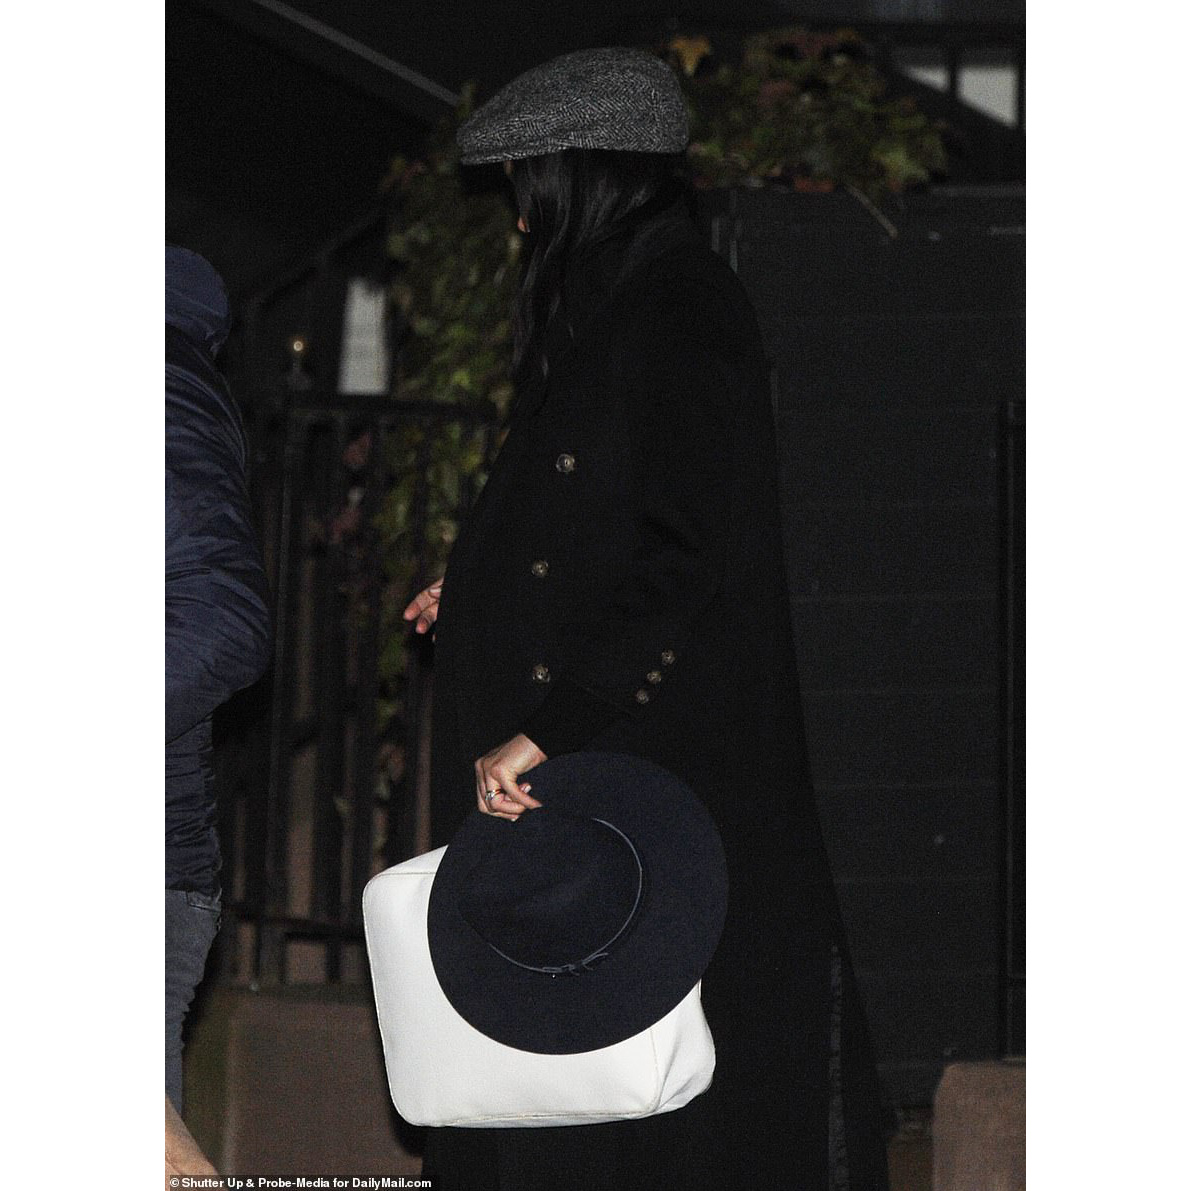 Meghan Markle / Duchess of Sussex spotted in New York City on 18 February, 2019